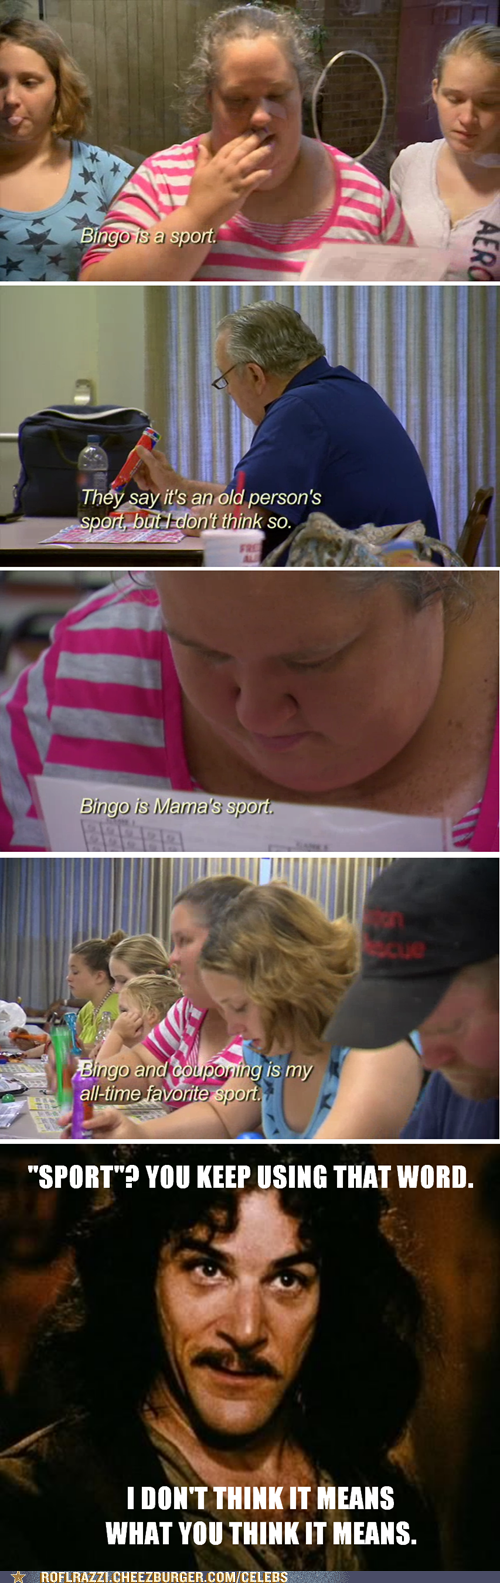 sports you keep using that word TV honey boo-boo bingo